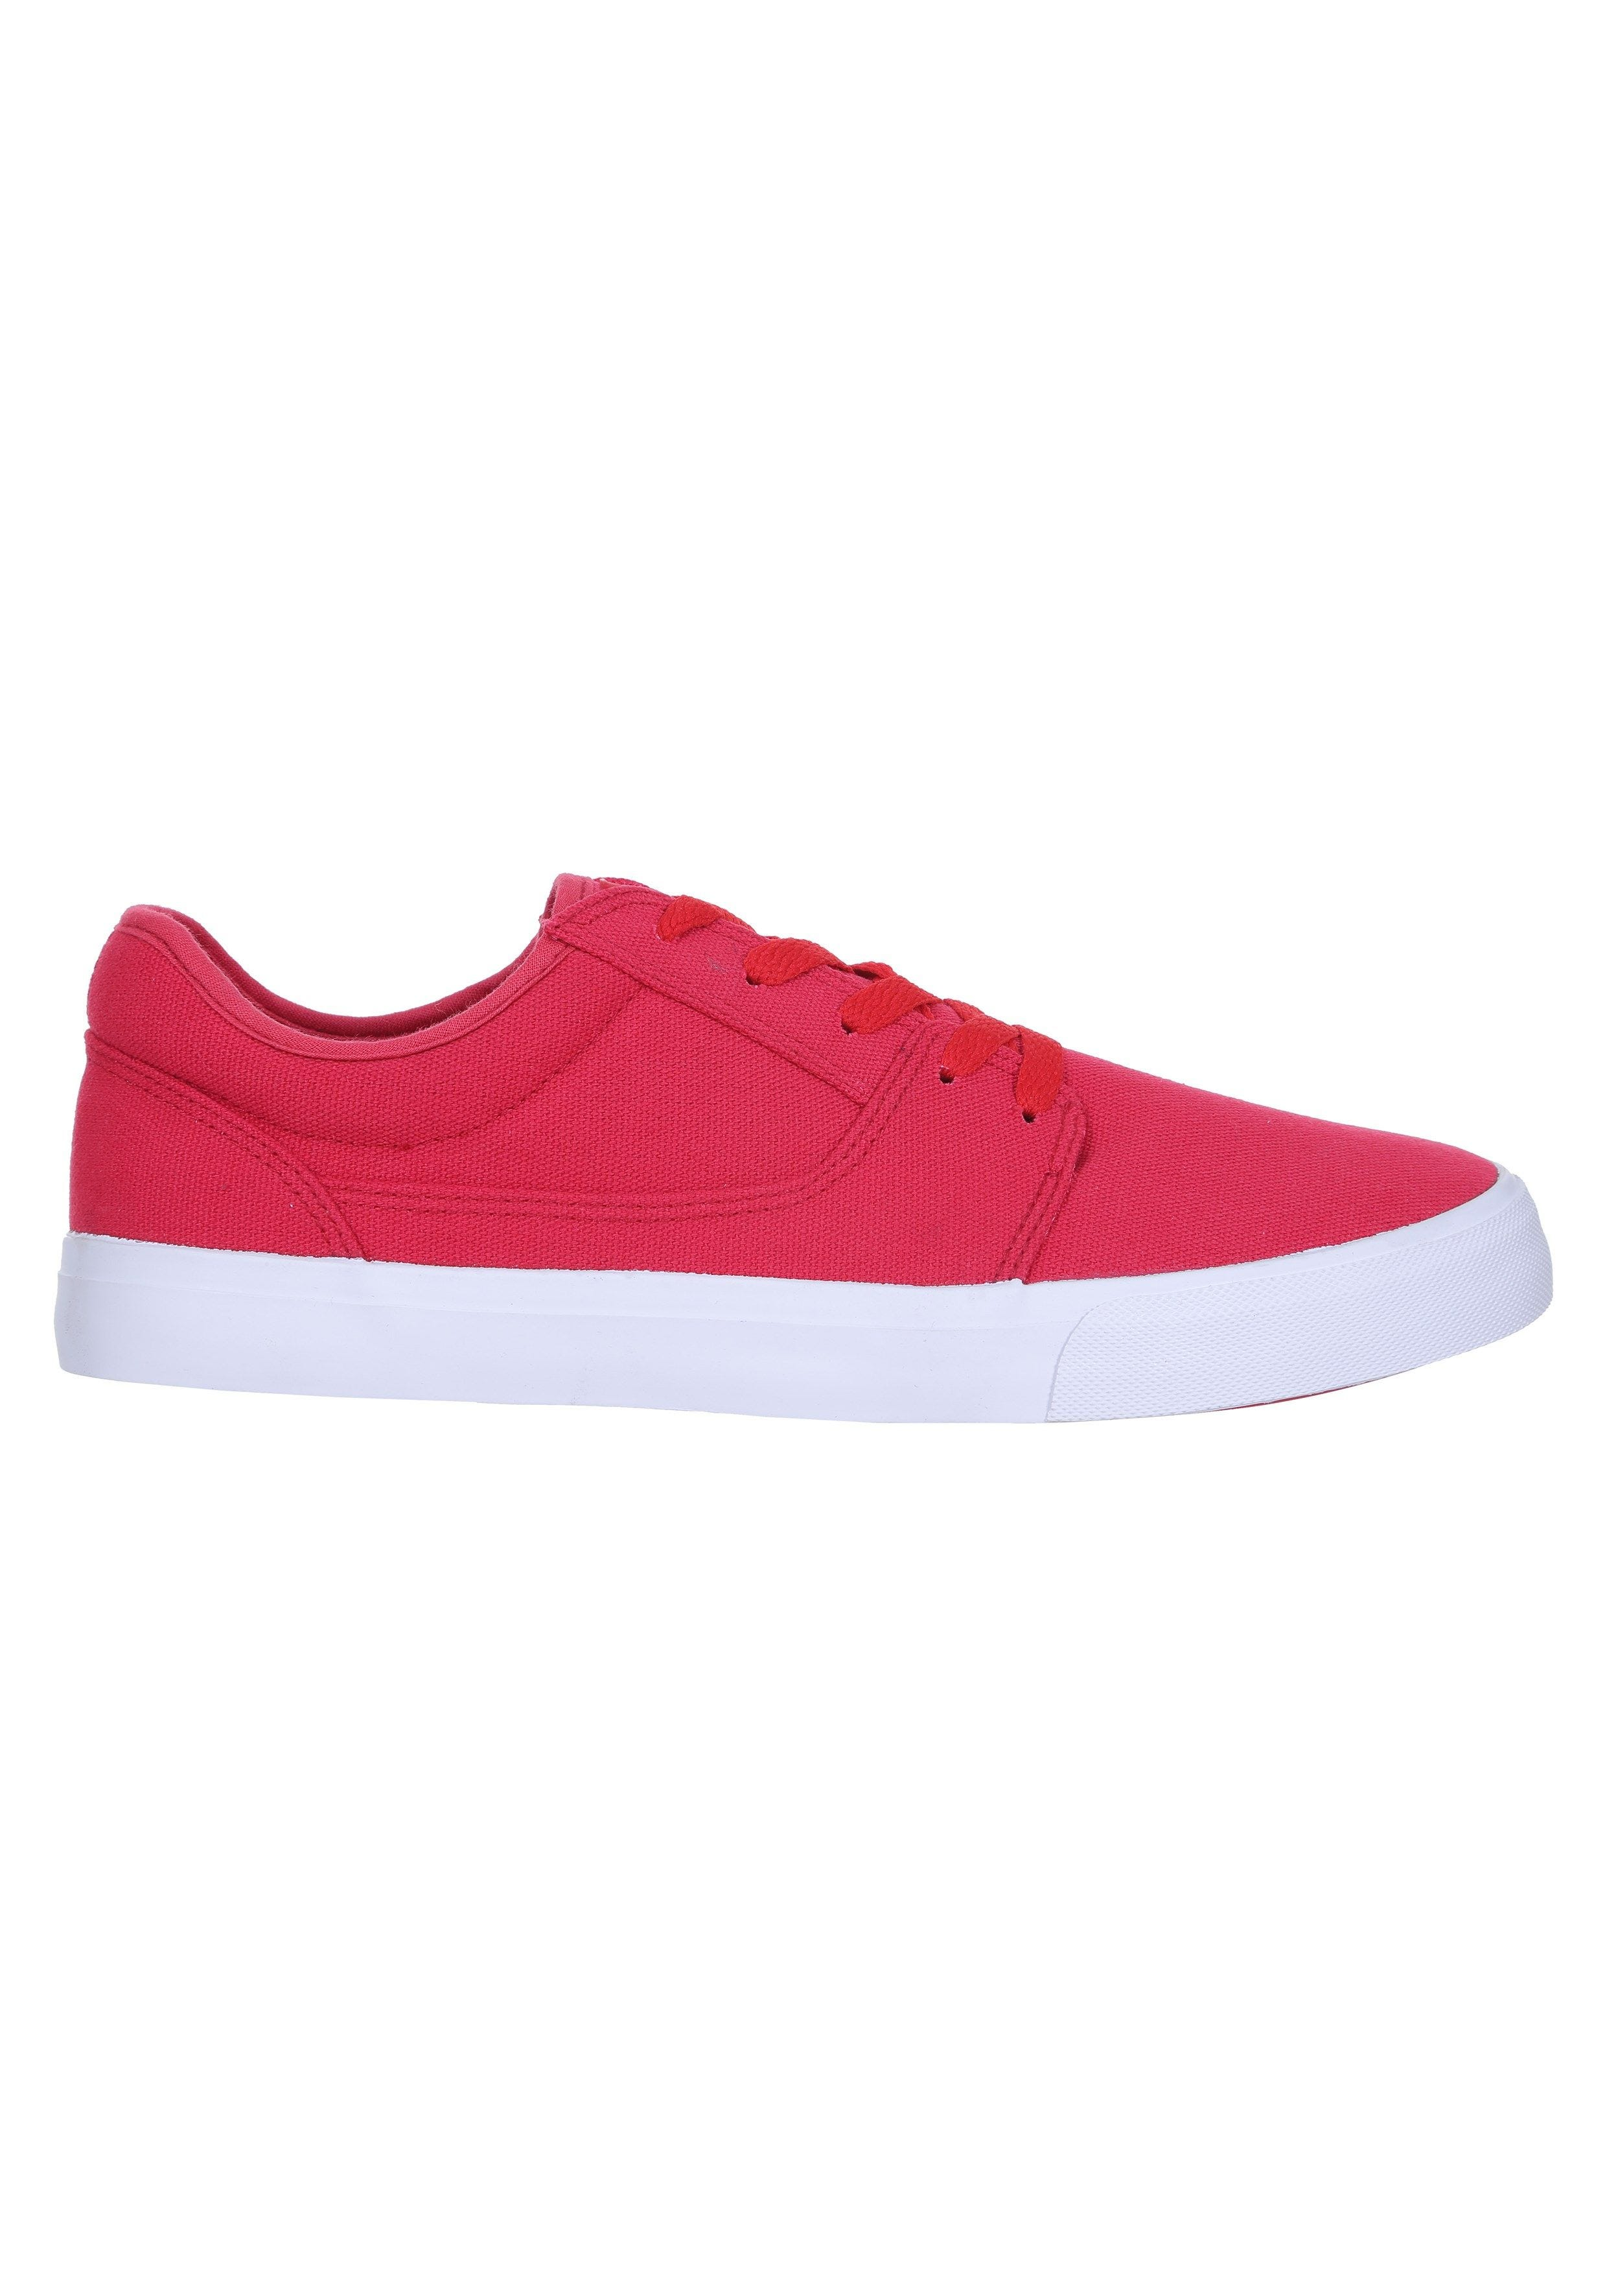 CORAL-RED